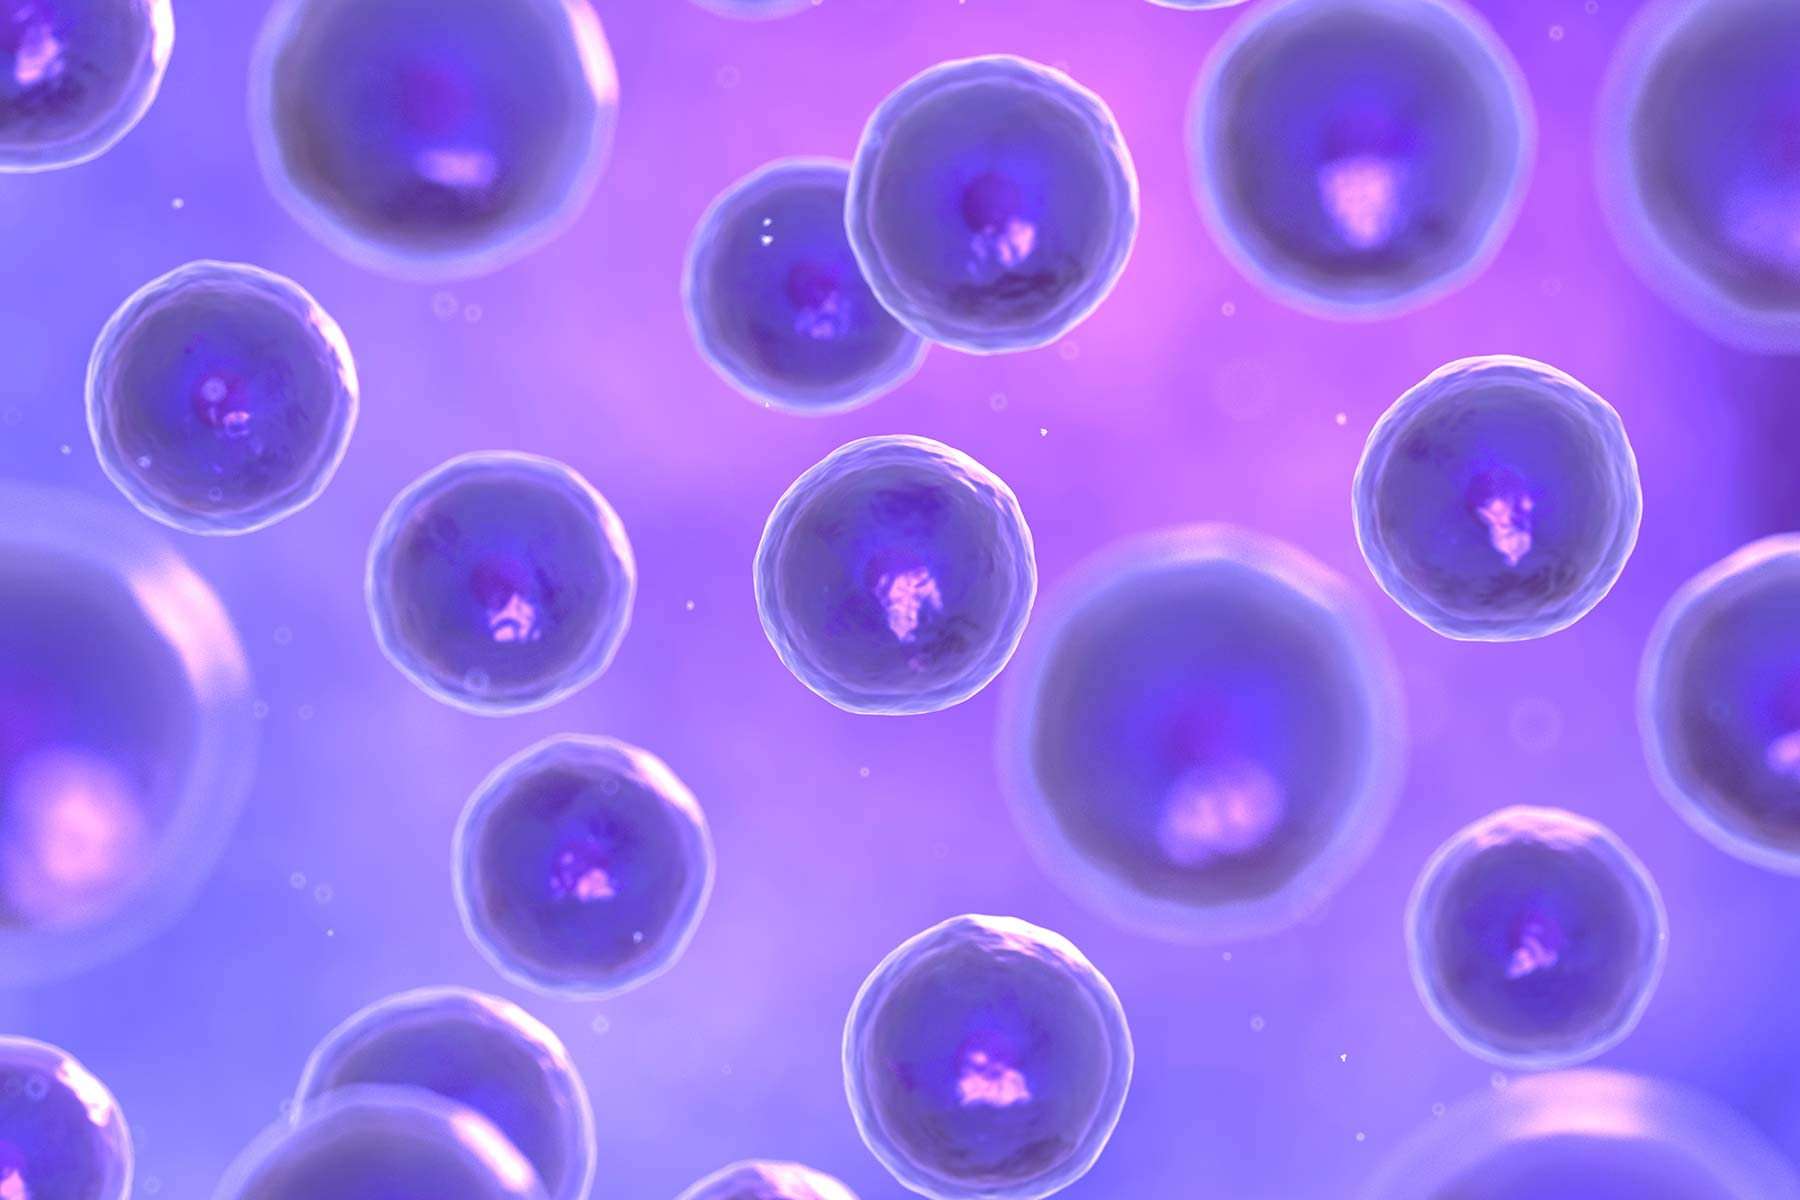 Cells floating in purple abstract background